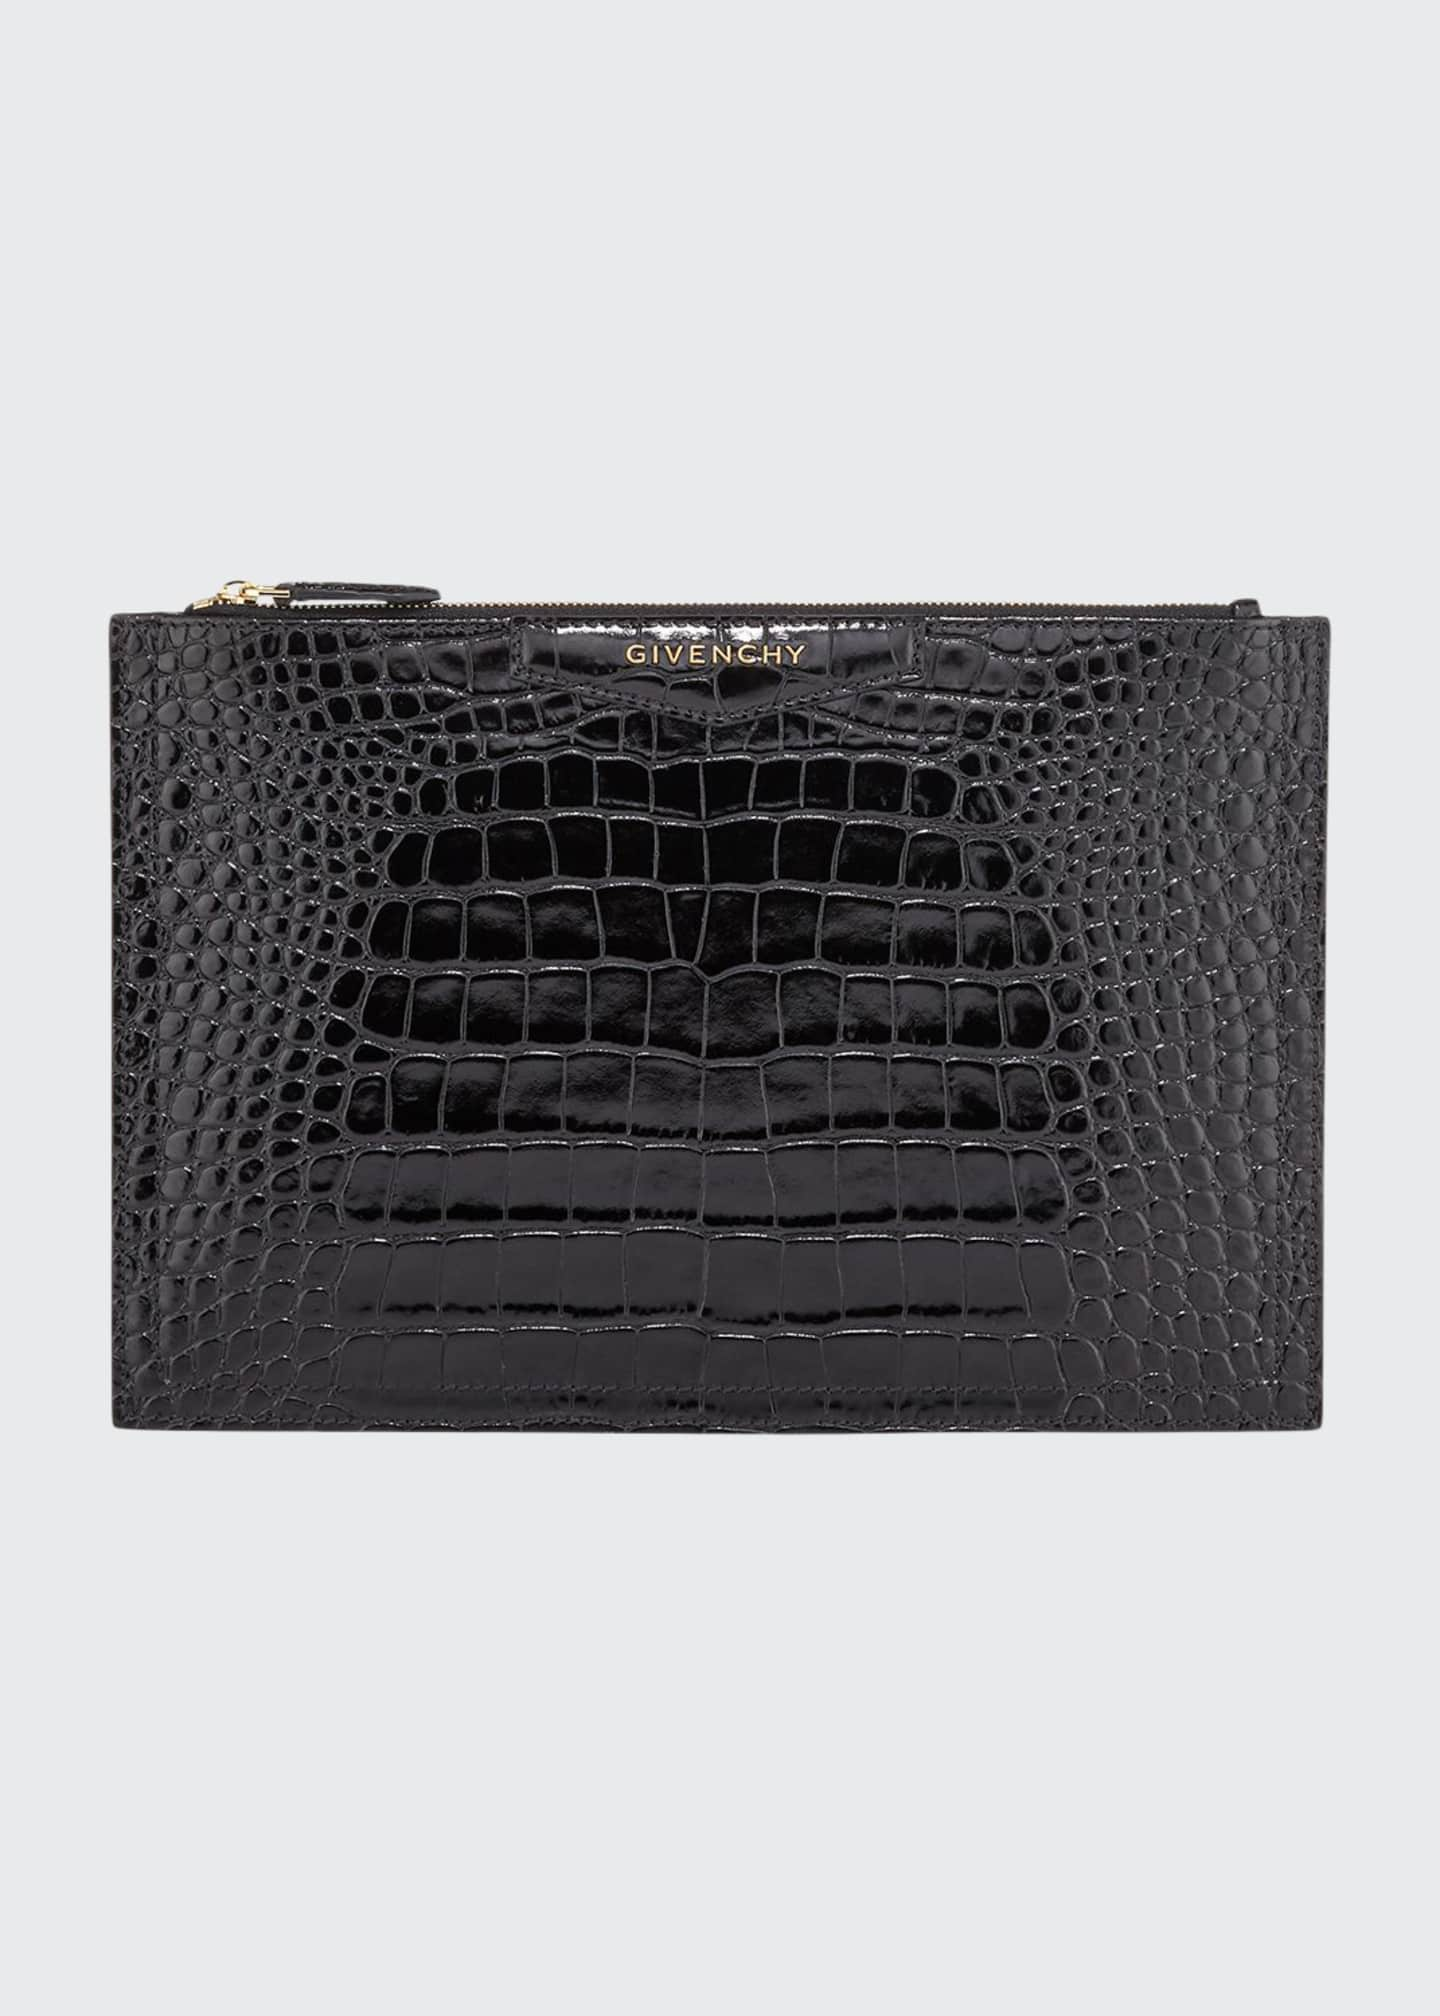 Givenchy Antigona Croc-Embossed Medium Pouch Bag